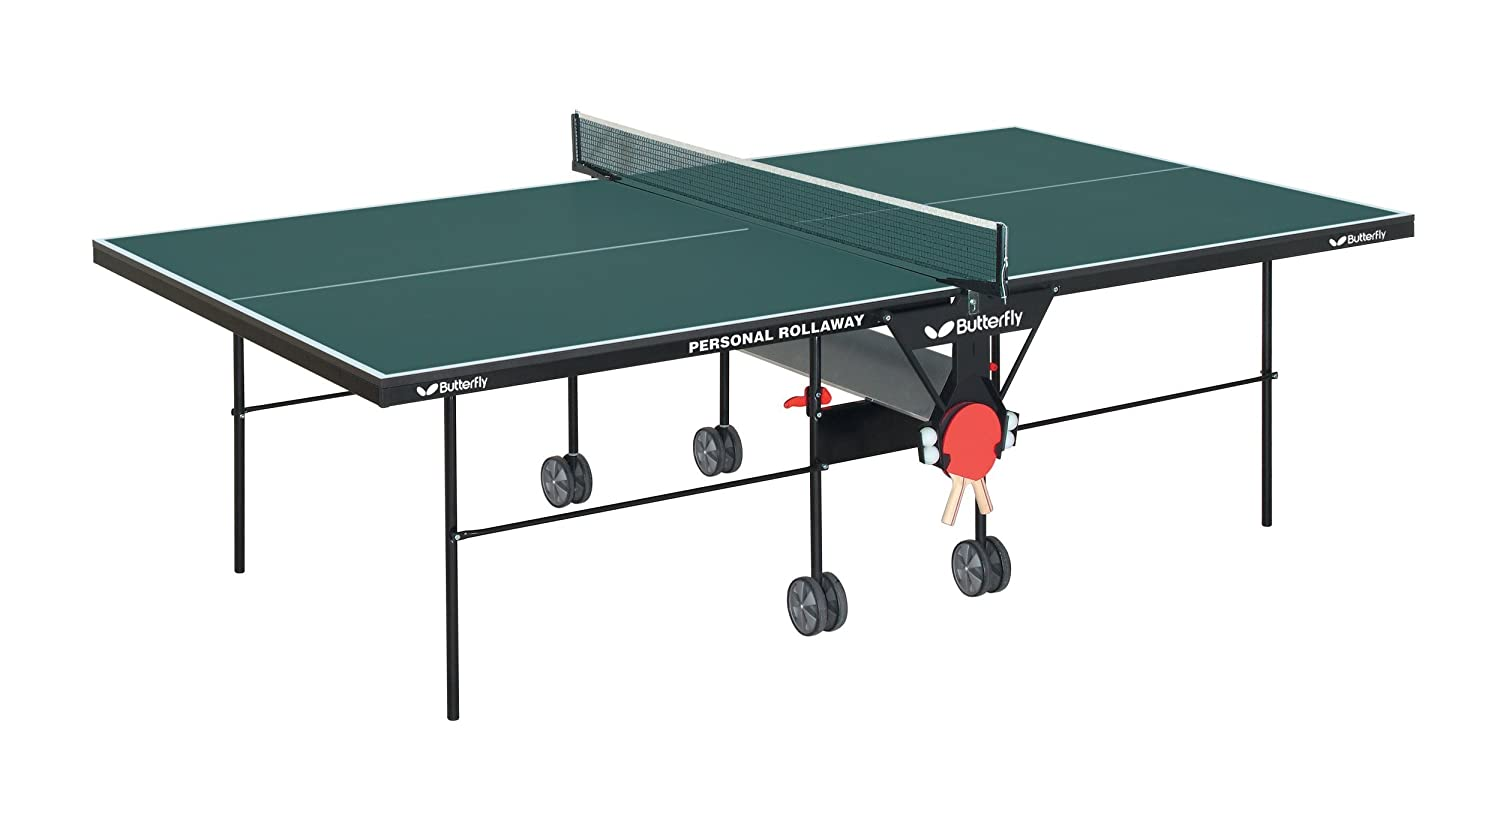 butterfly centrefold 25 review table tennis equipment. Black Bedroom Furniture Sets. Home Design Ideas